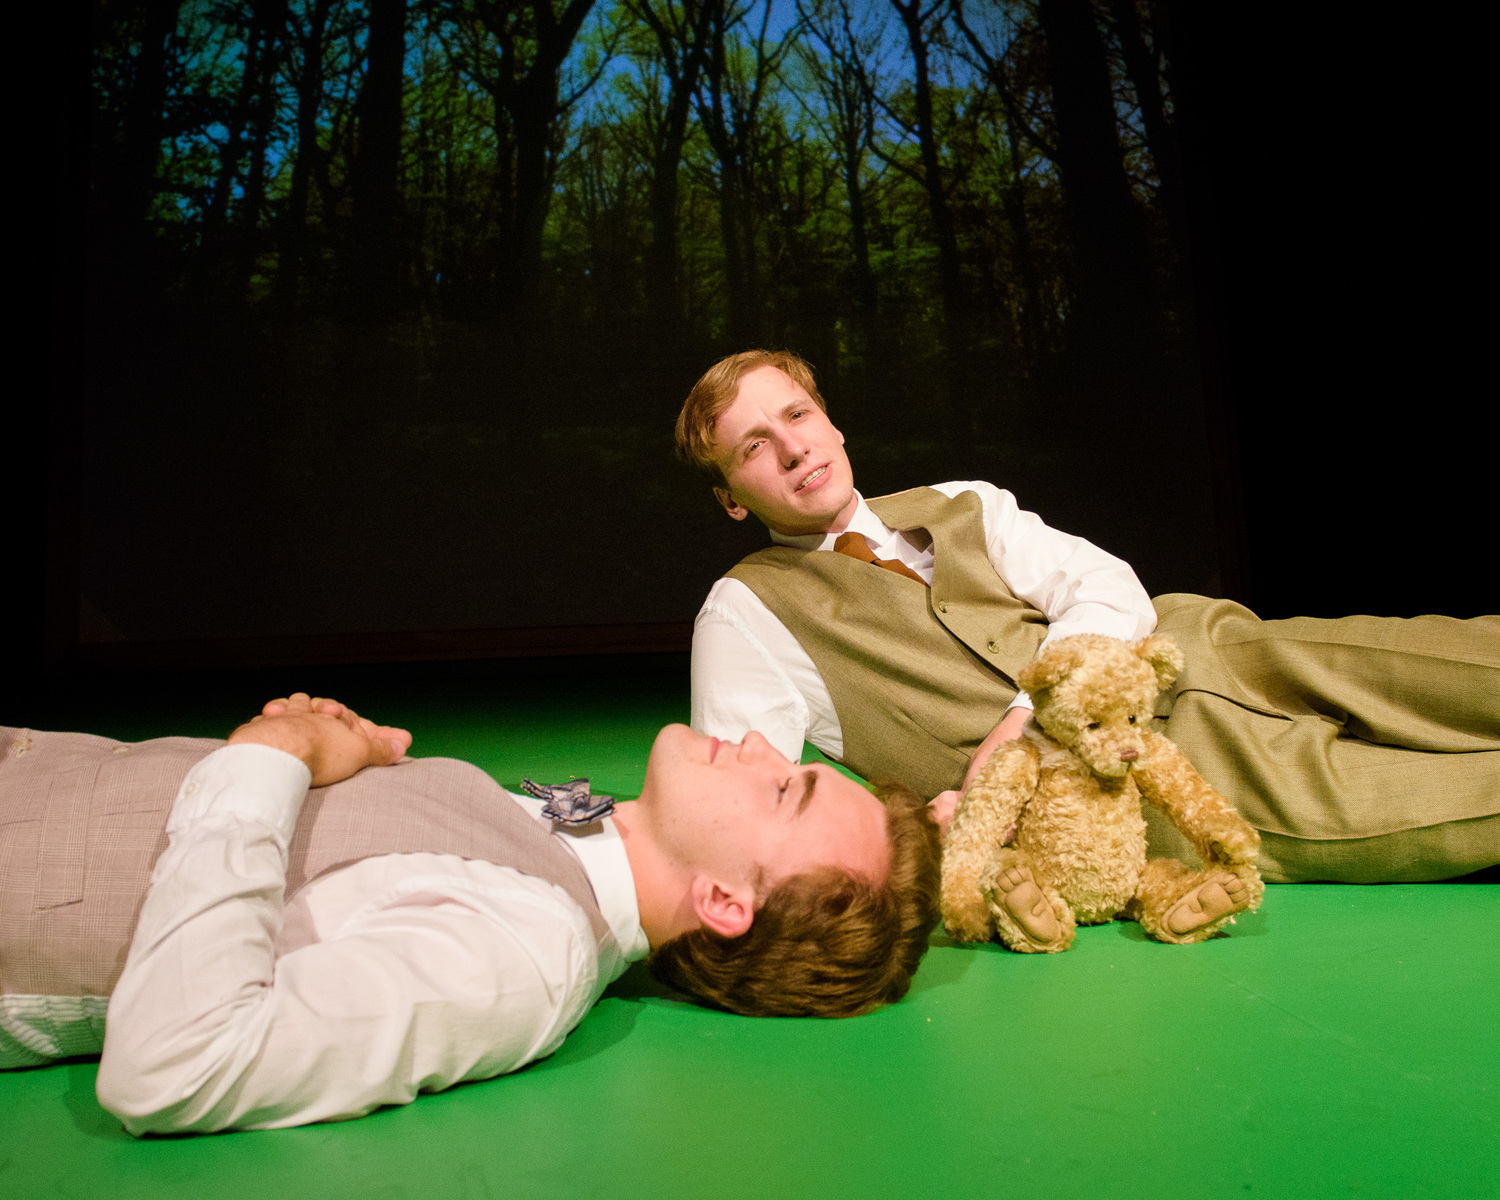 BWW Review: BRIDESHEAD REVISITED at Goodwood Theatre